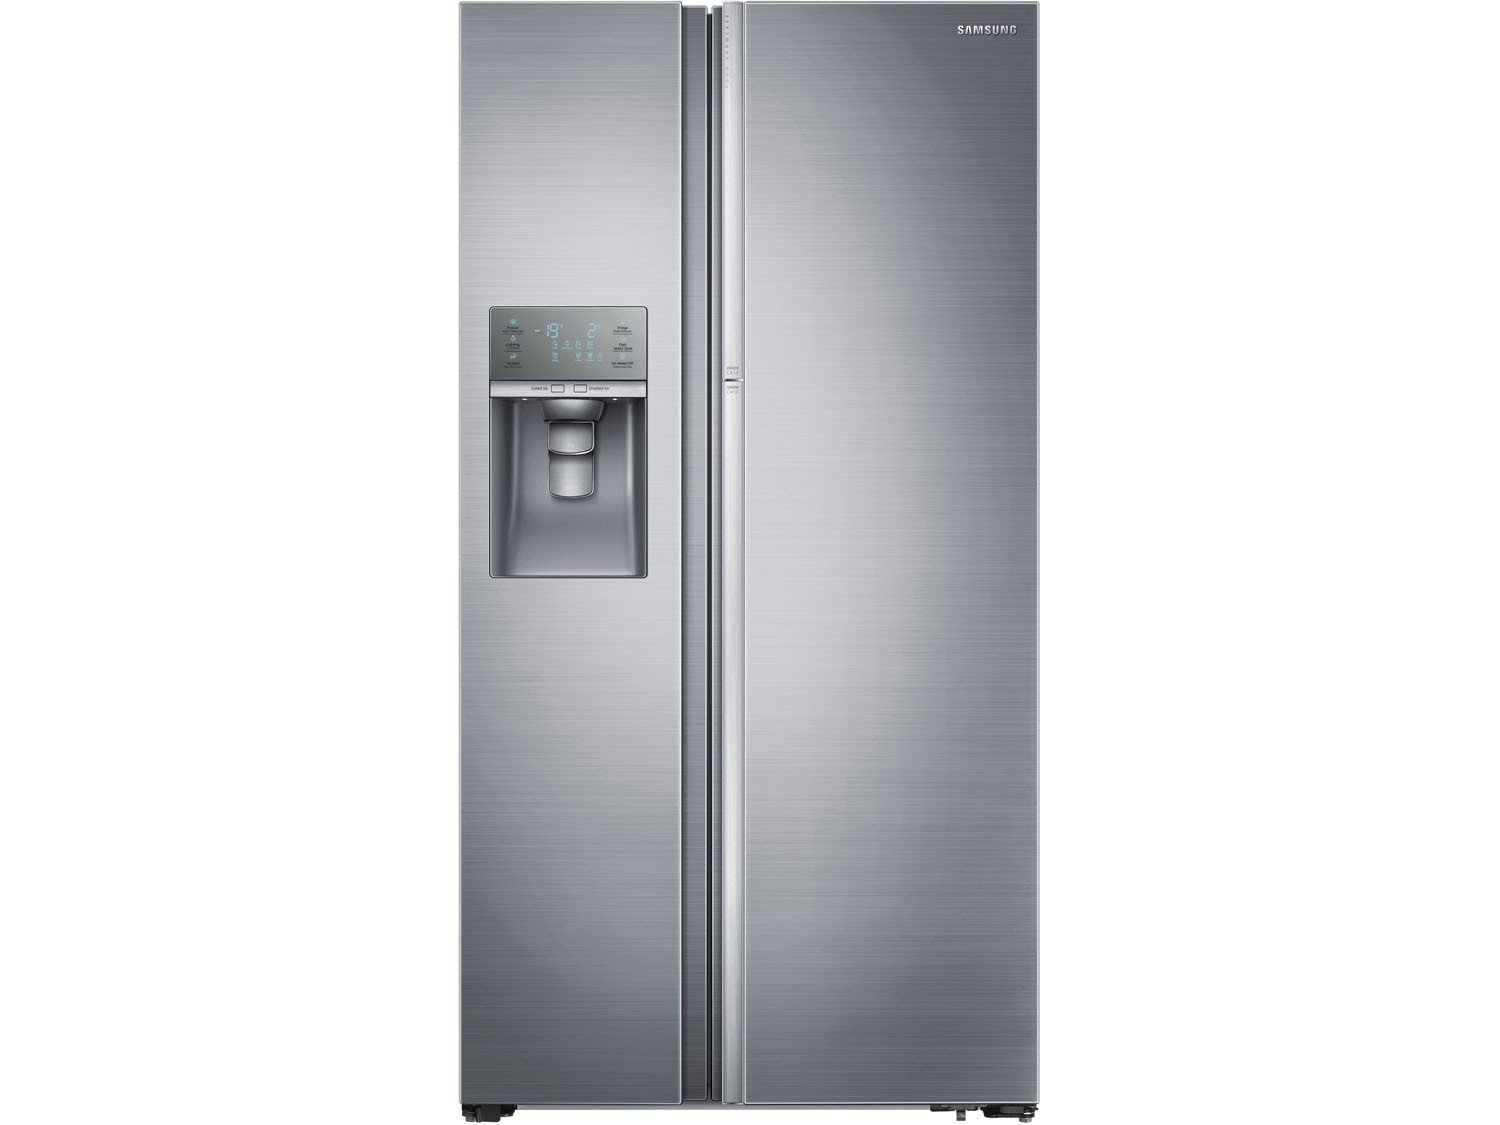 geladeira refrigerador samsung side by side 765l inox food. Black Bedroom Furniture Sets. Home Design Ideas